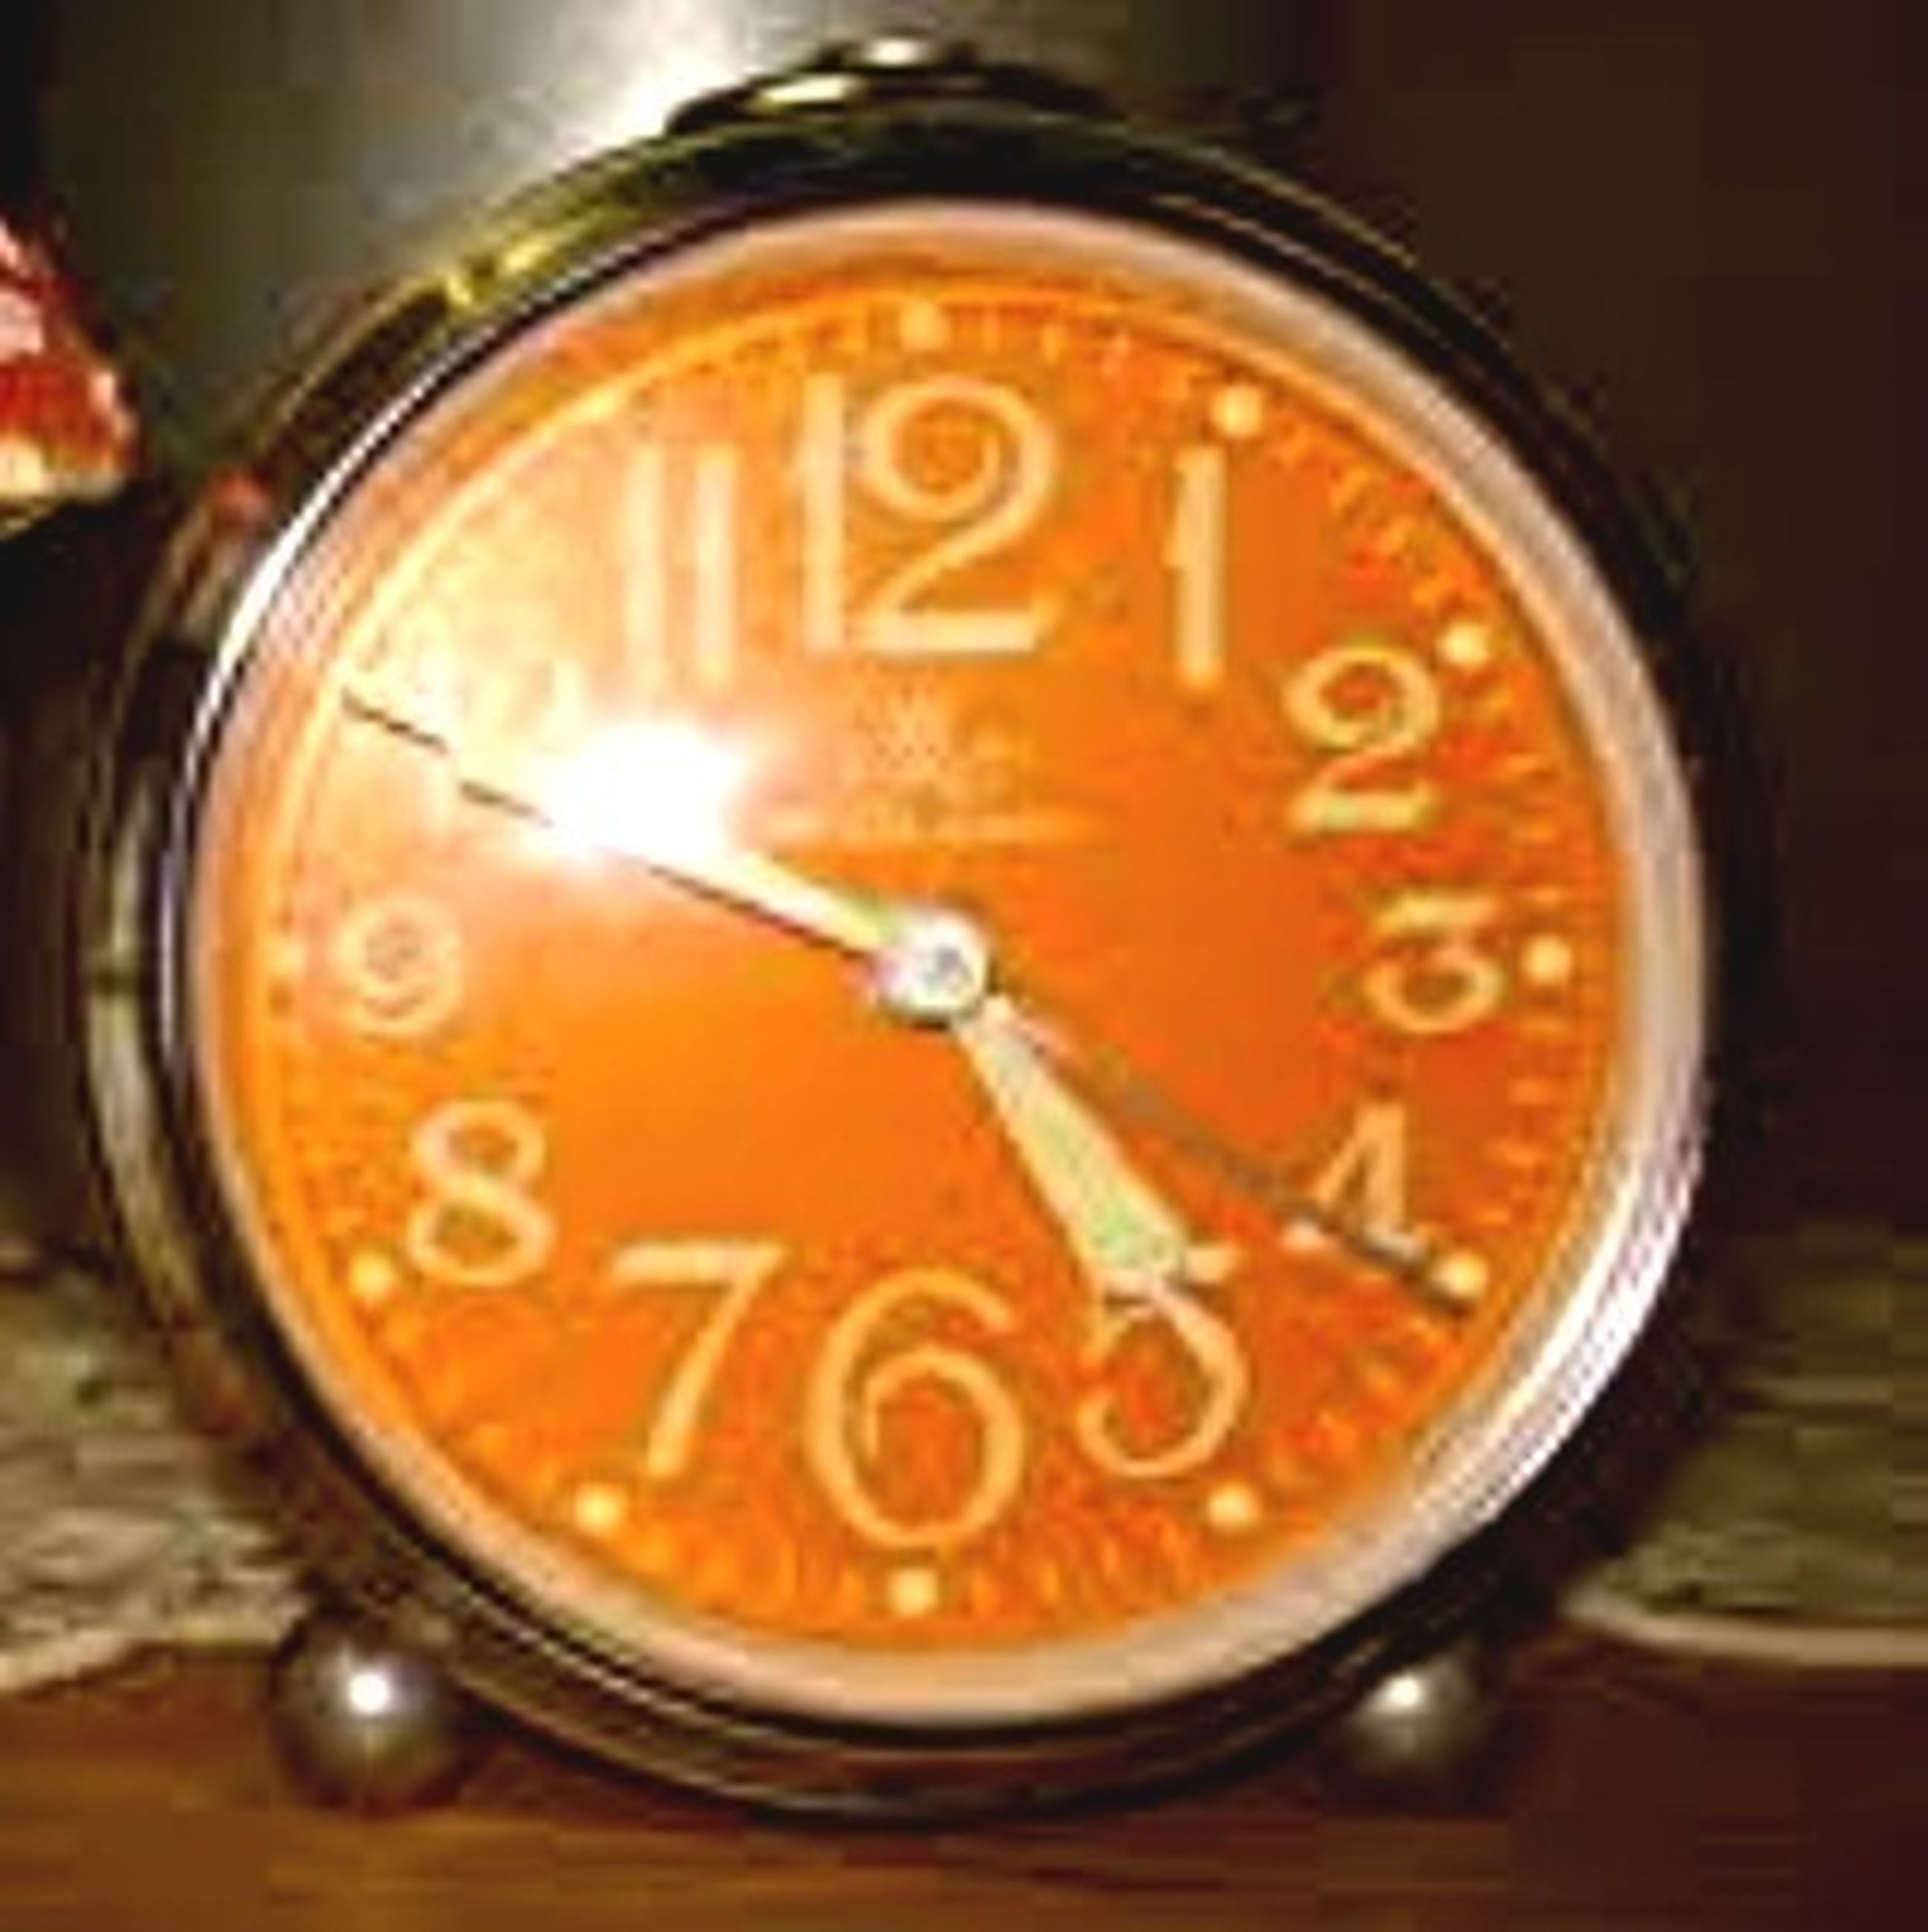 close-up, text, indoors, communication, western script, number, time, still life, clock, focus on foreground, circle, single object, table, no people, glass - material, selective focus, metal, old-fashioned, accuracy, instrument of time